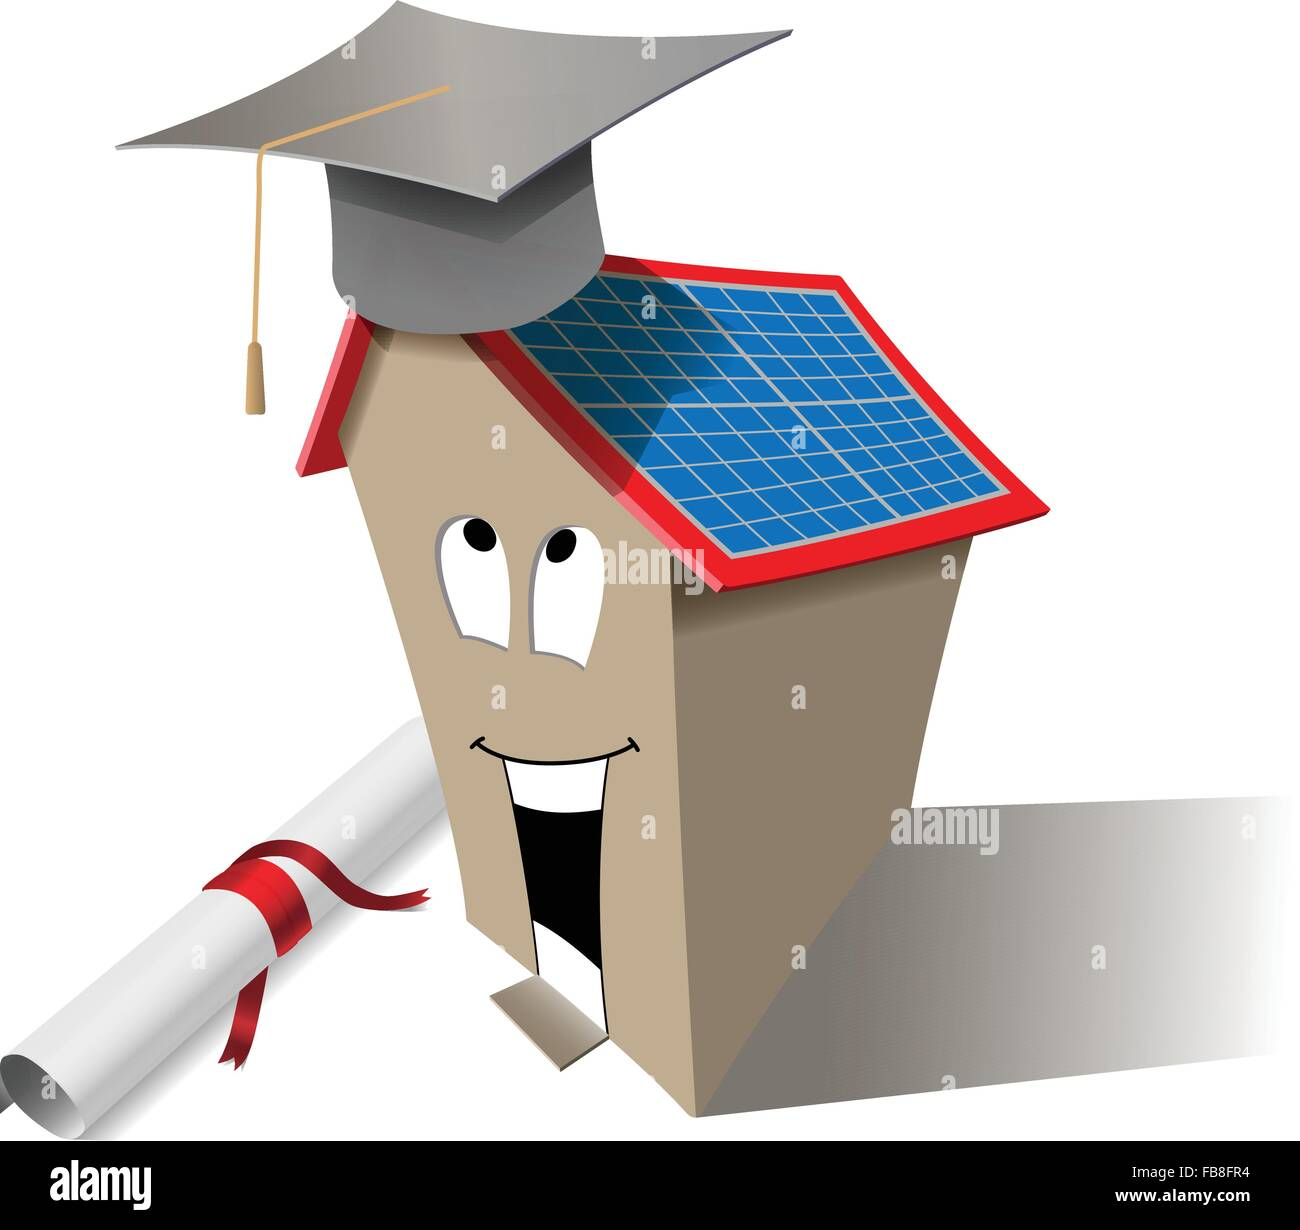 Vector Smart House Concept With Graduation Cap and Diploma, Eps10 Vector, Transparency Used - Stock Image